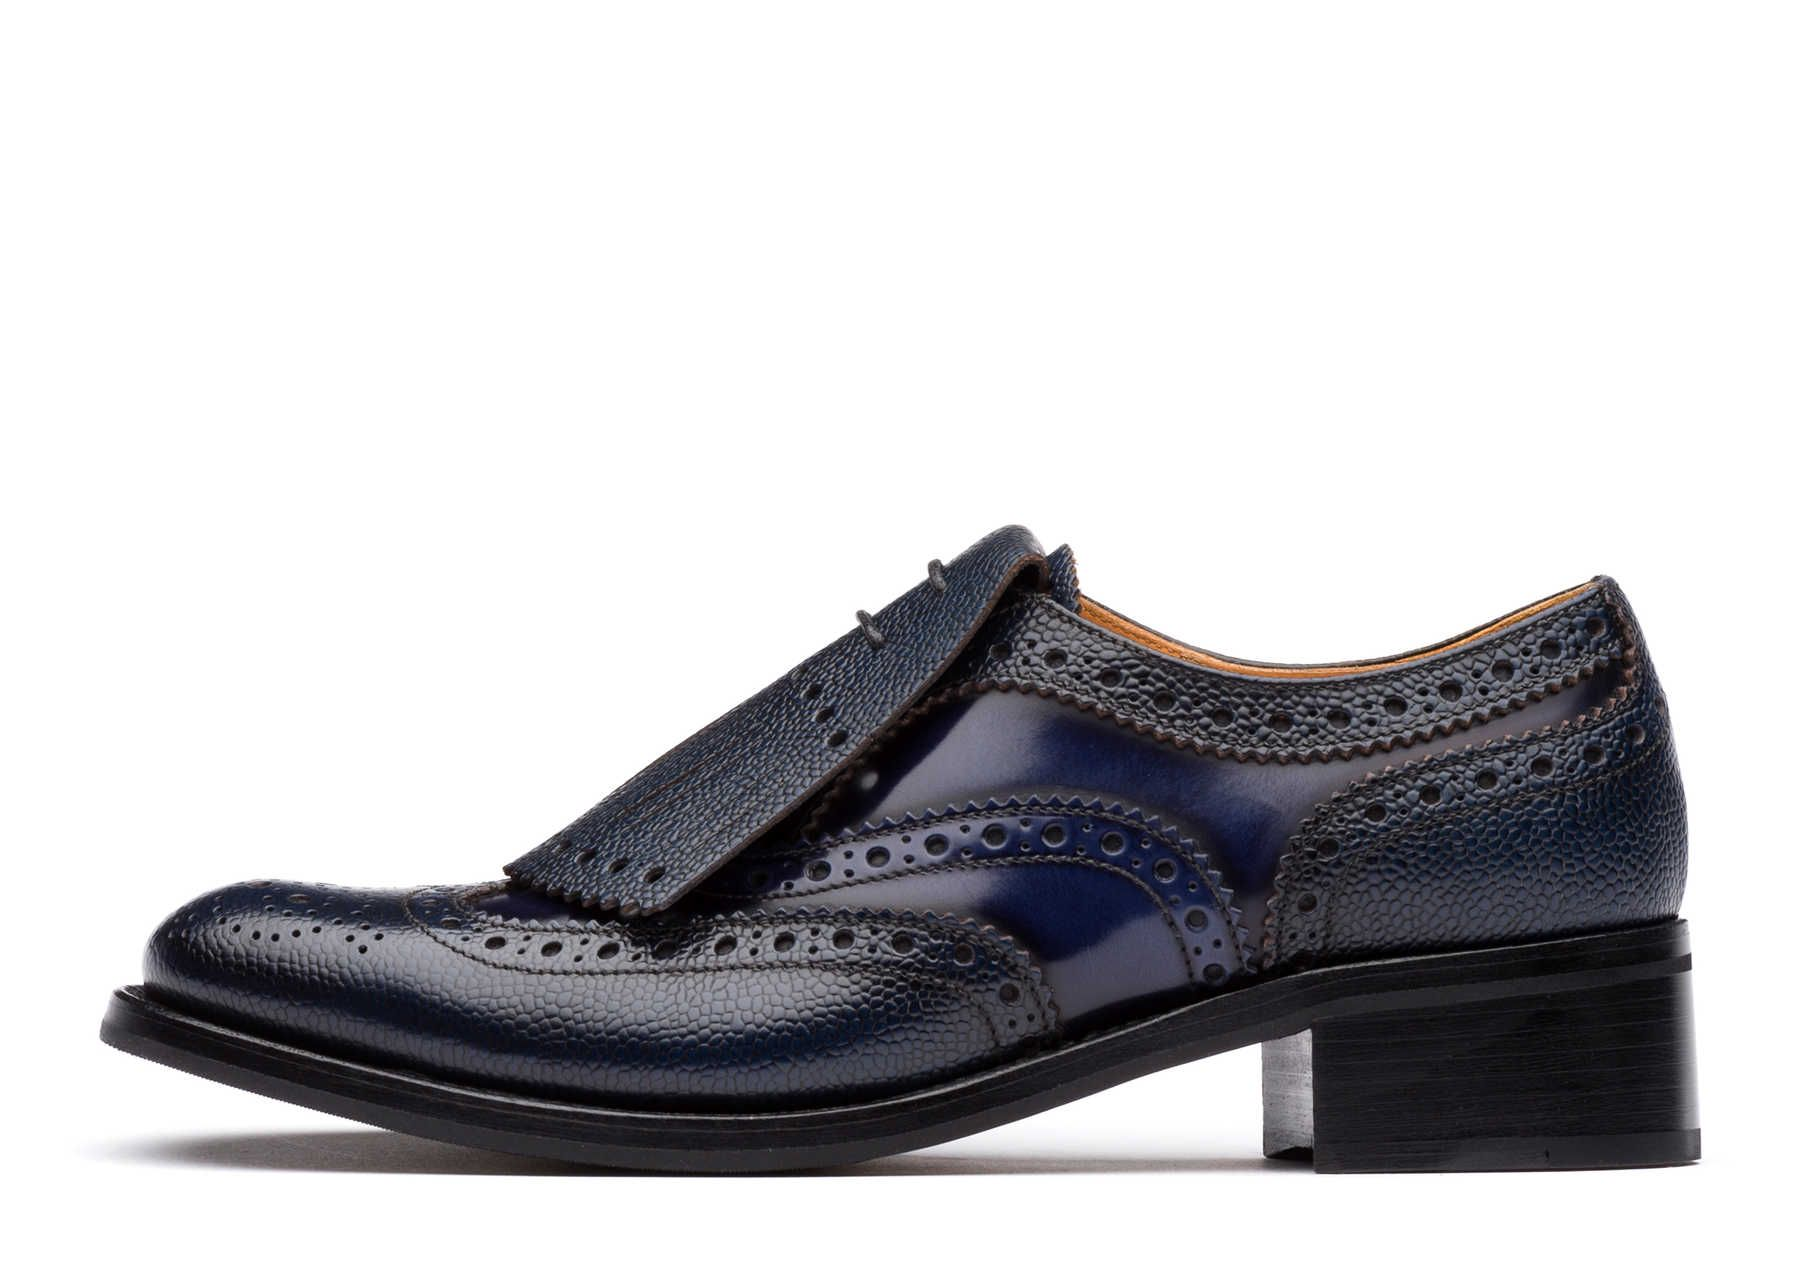 6f1d80284a3 Church s Footwear website - Discover and shop the new collection ...